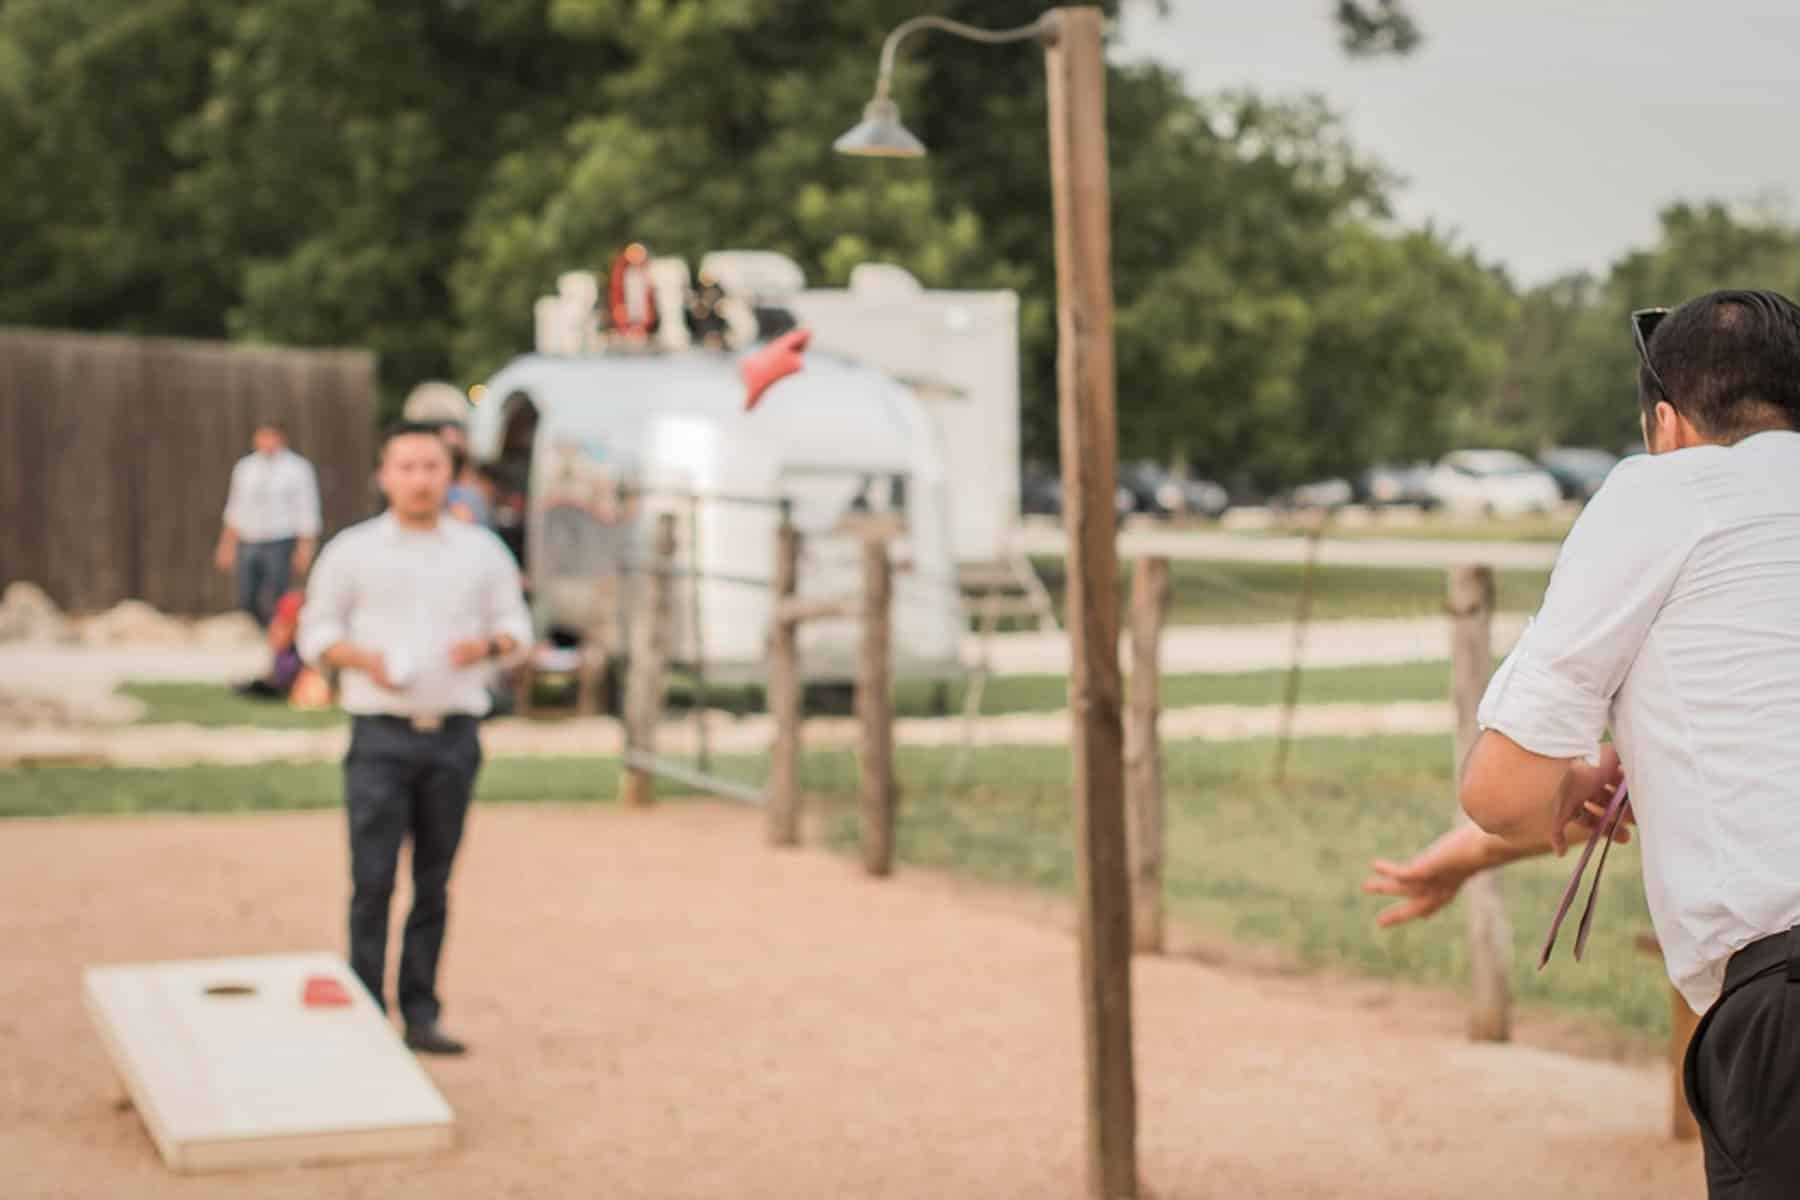 Silvercloud Airstream Photo Booth with wedding games on the lawn